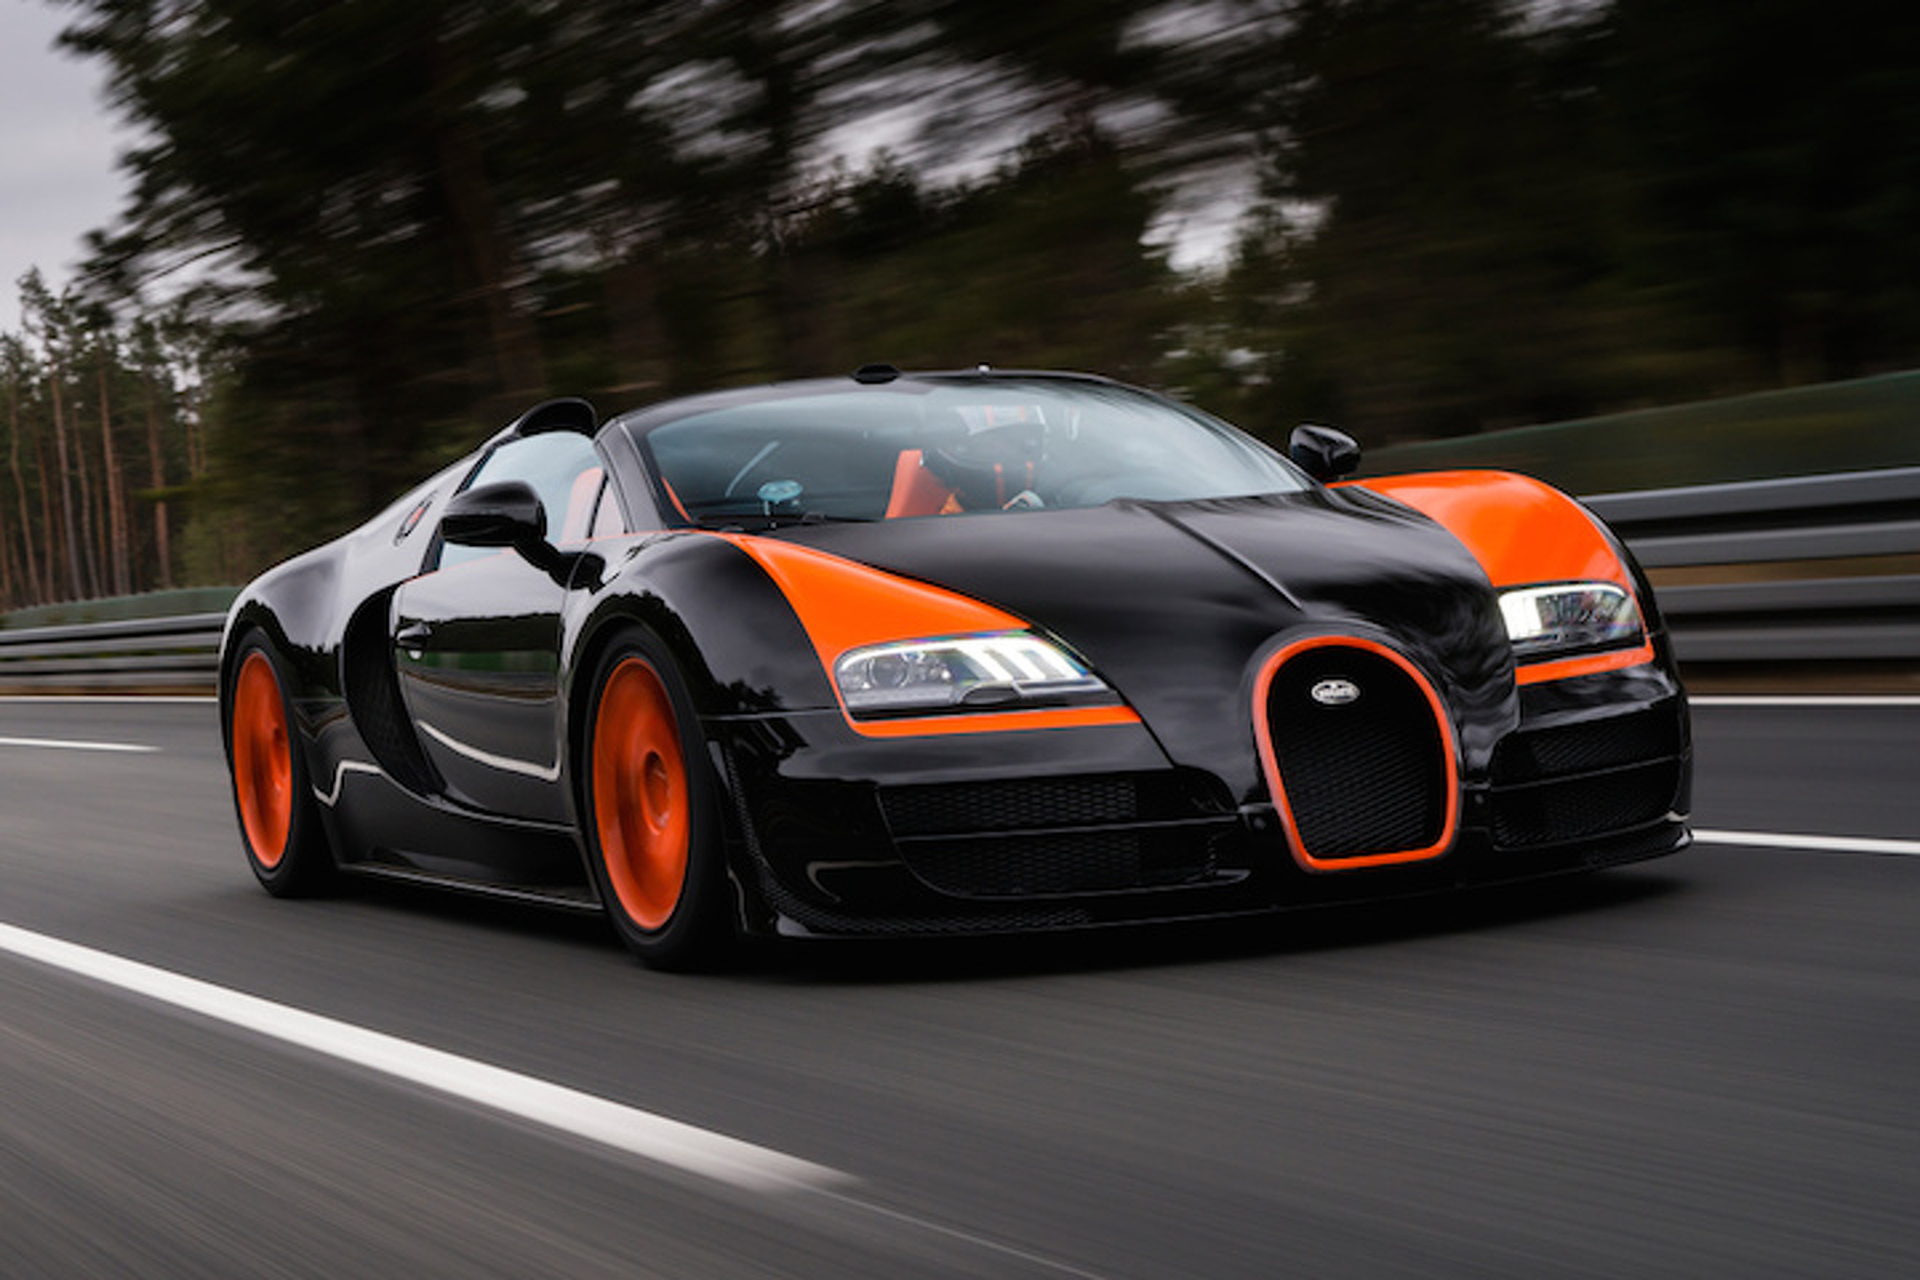 What S The Fastest Production Car In World It Not Exactly Clear Cut Anymore